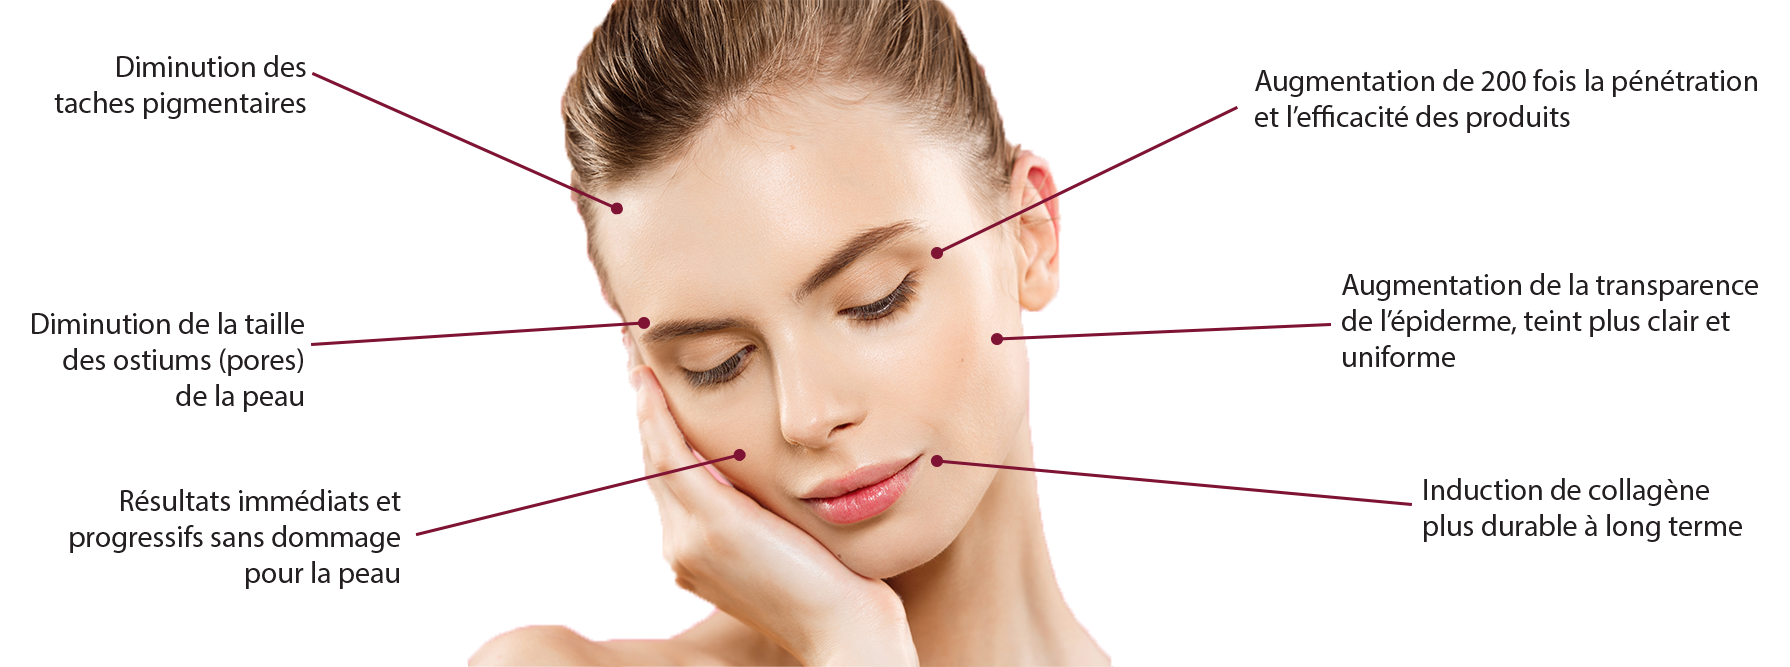 MICRONEEDLING OU STIMULATION COLLAGENIQUE